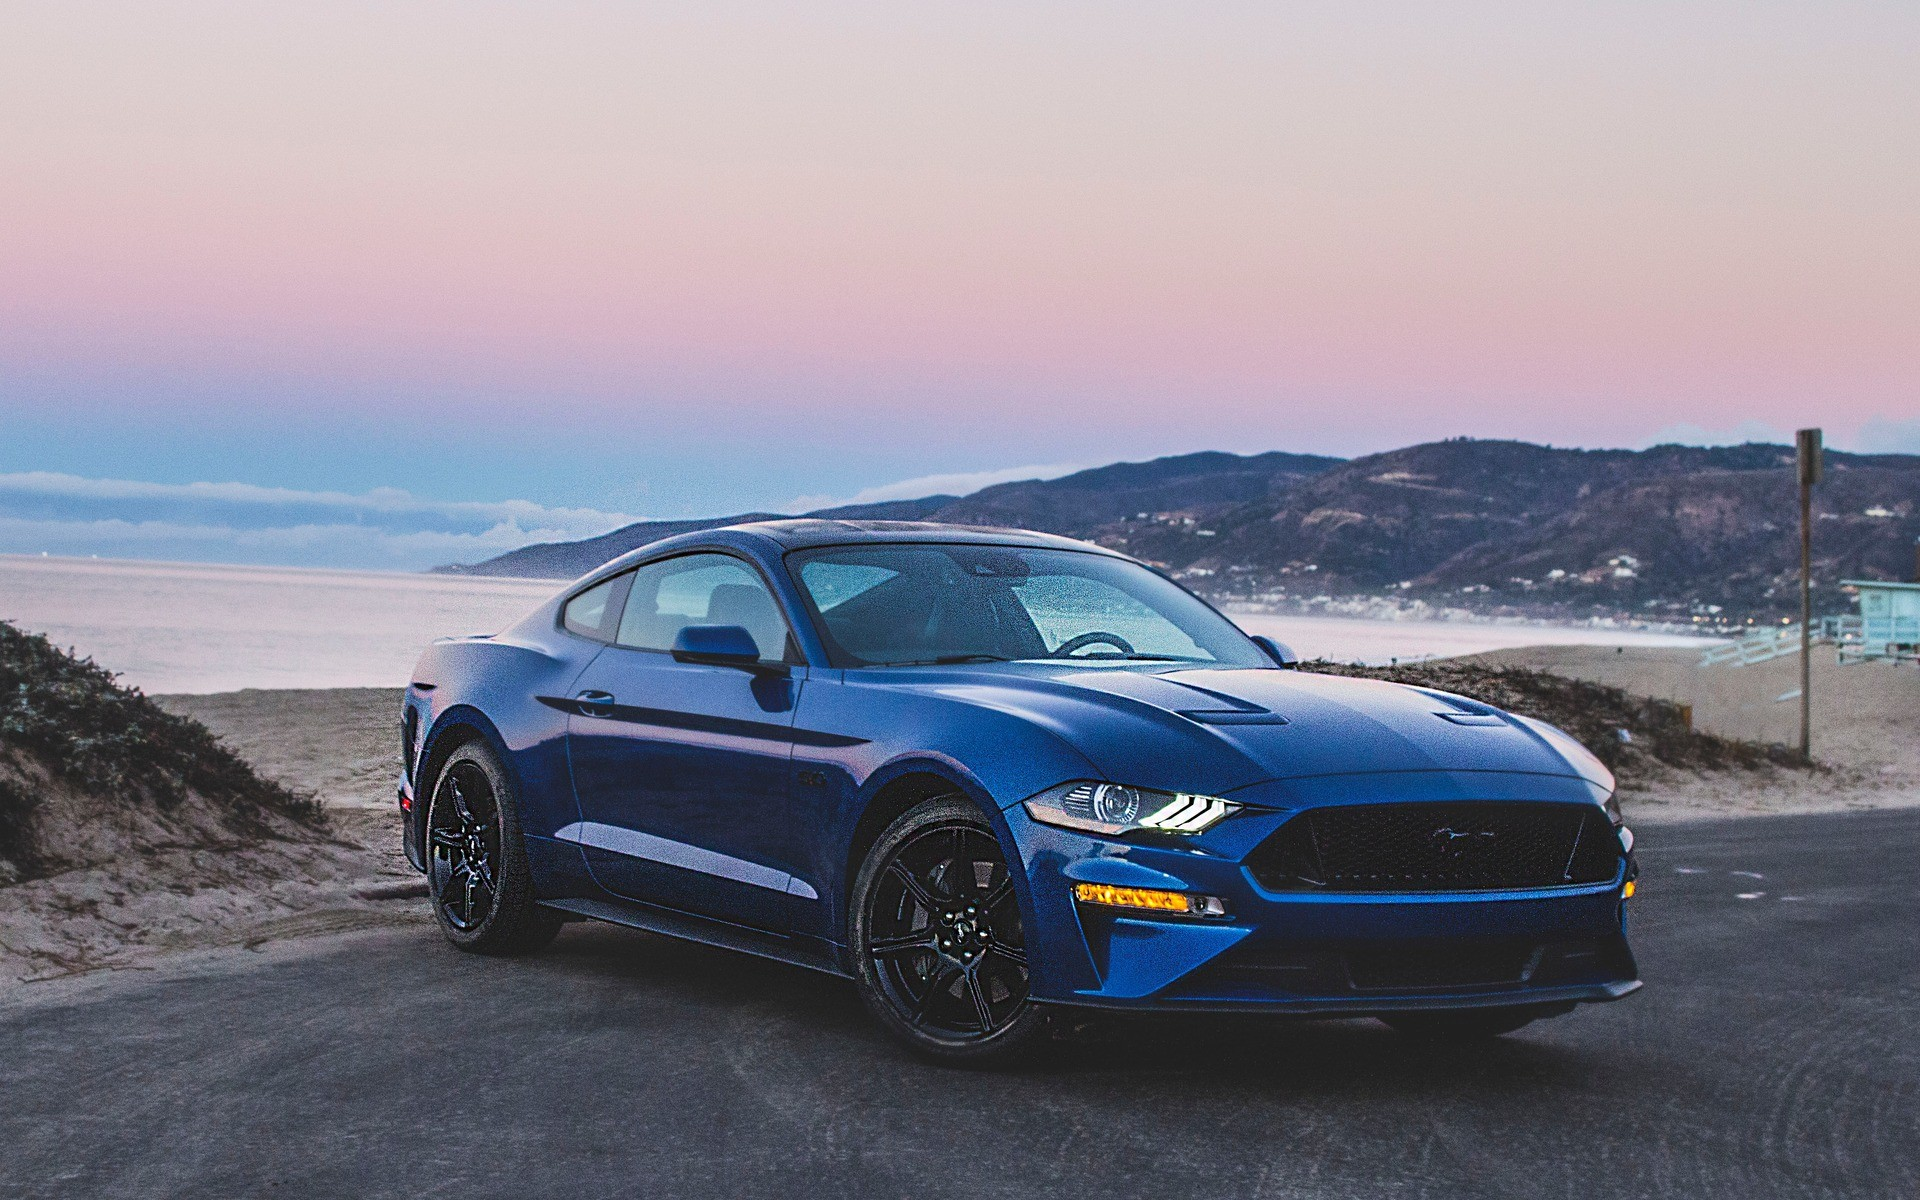 Wallpaper Of Mustang Posted By Sarah Walker